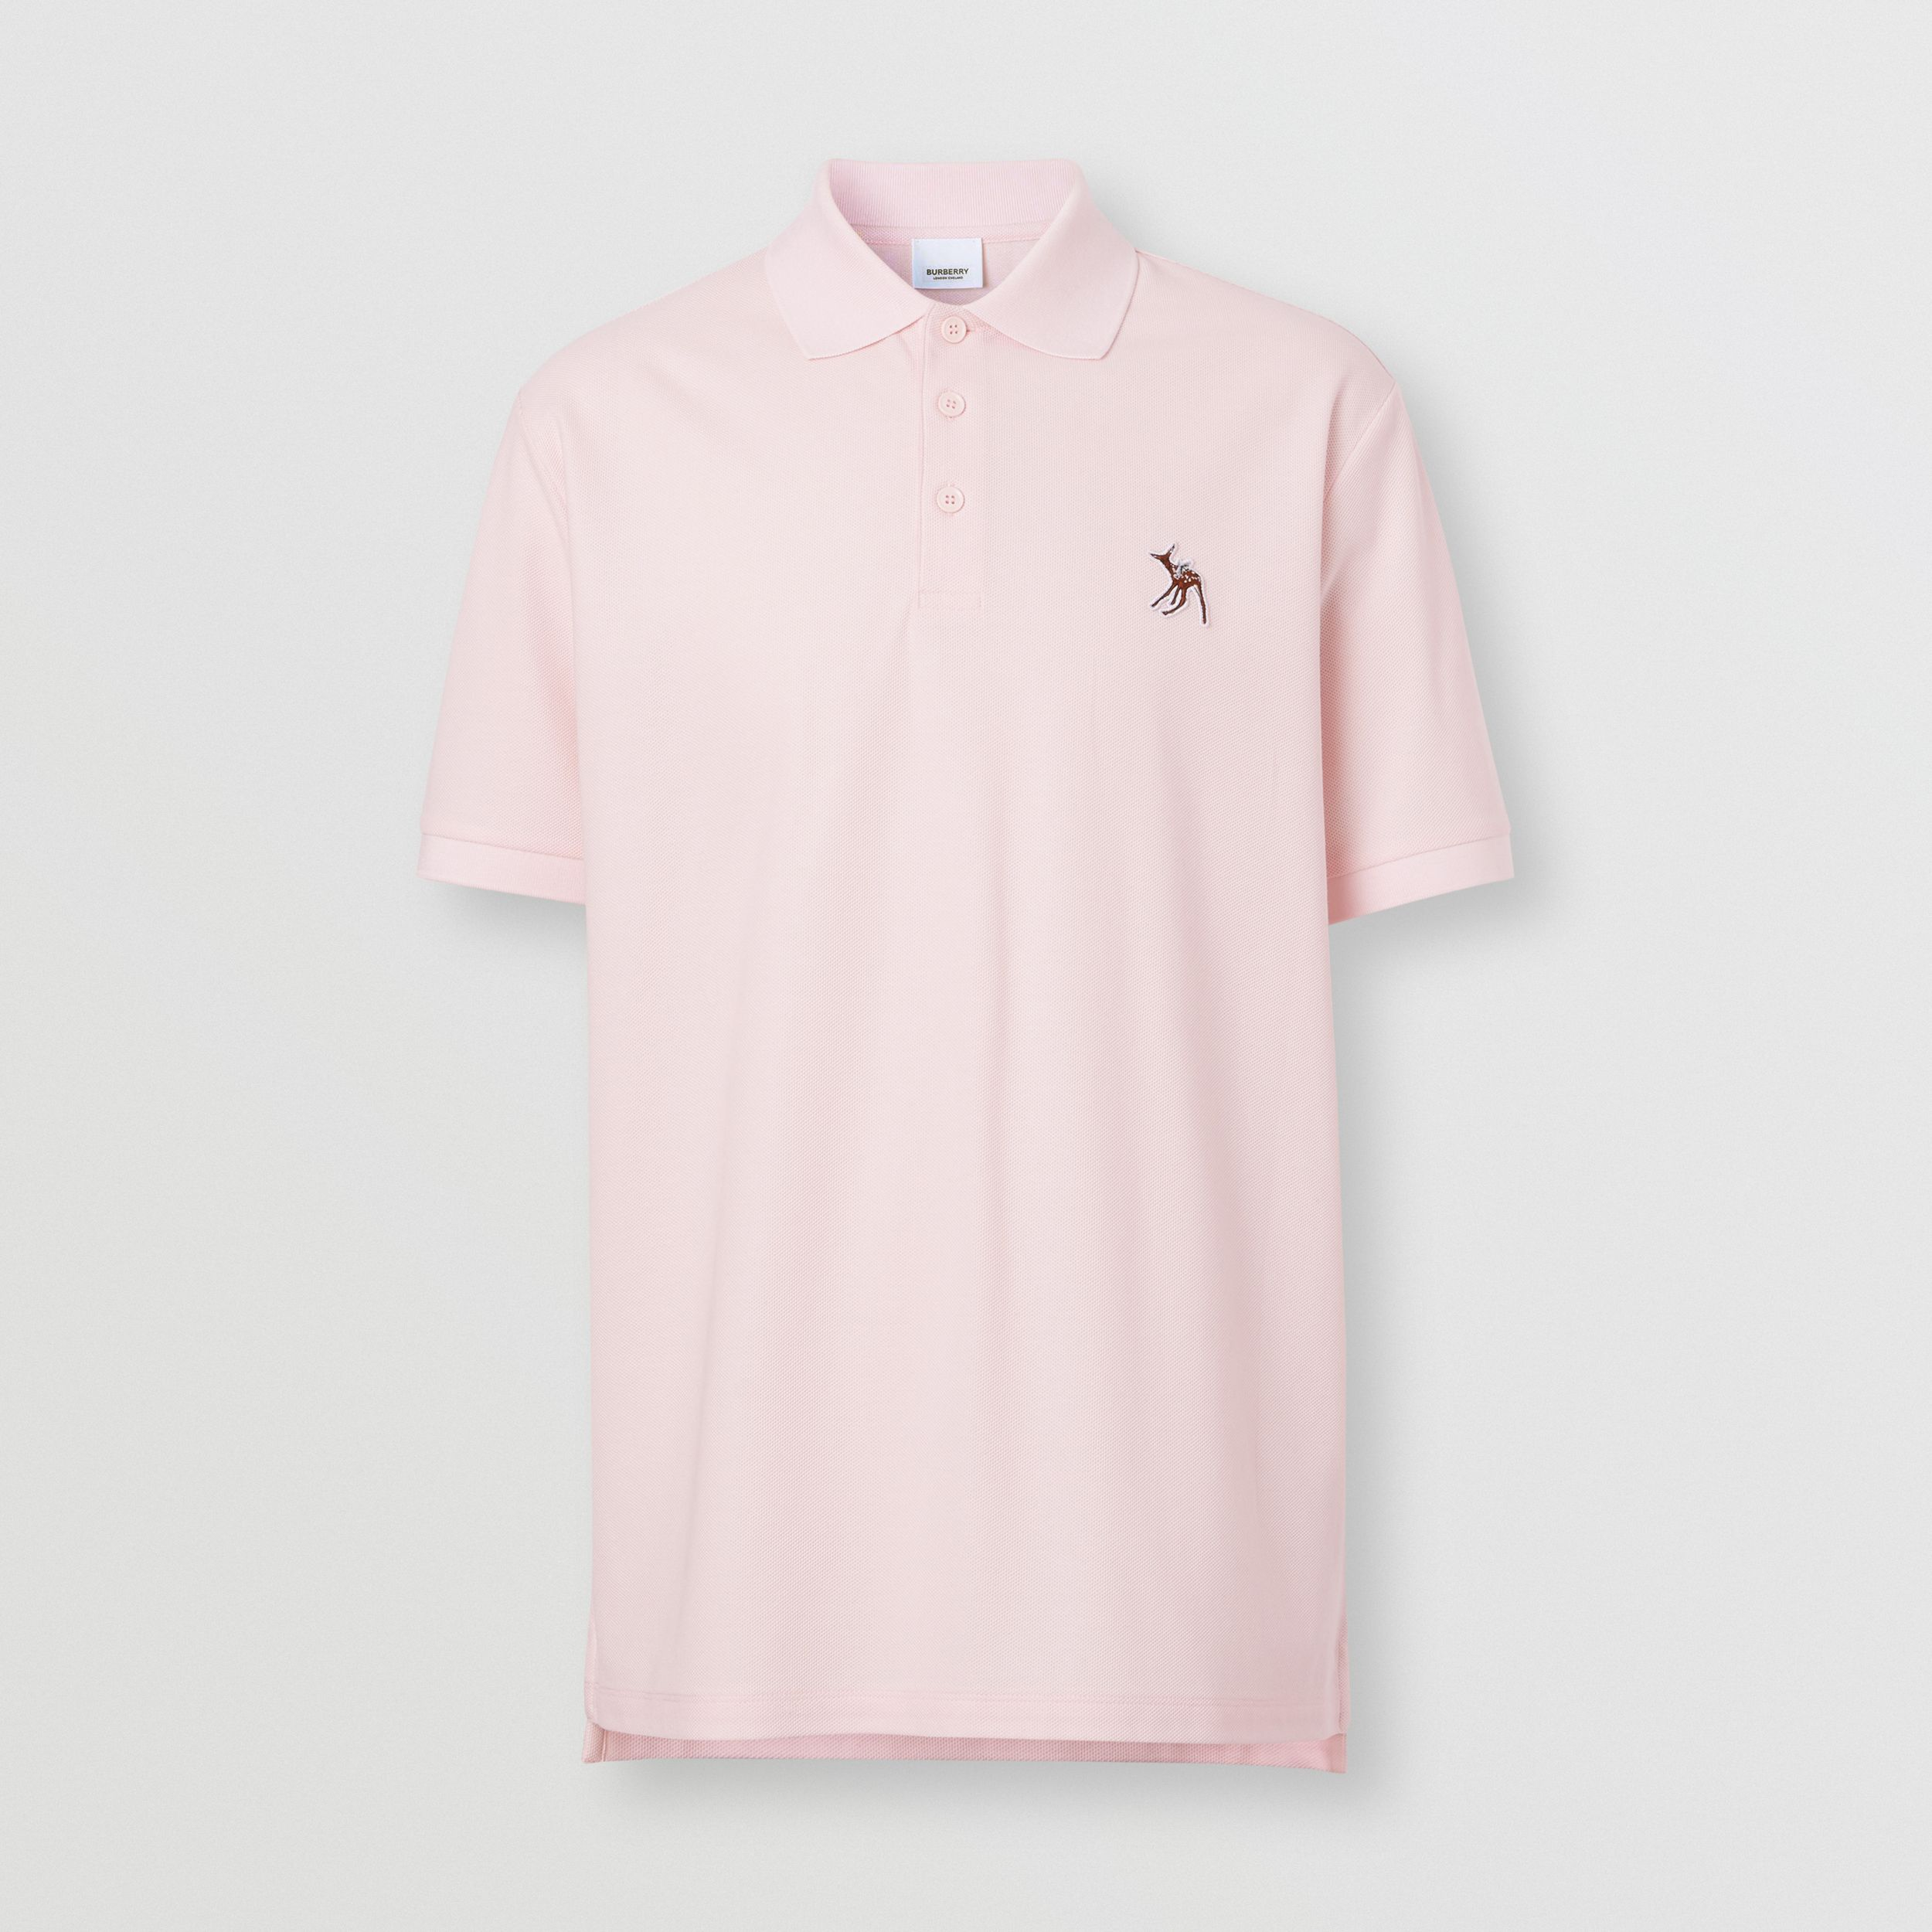 Deer Appliqué Cotton Piqué Polo Shirt in Alabaster Pink - Men | Burberry - 4